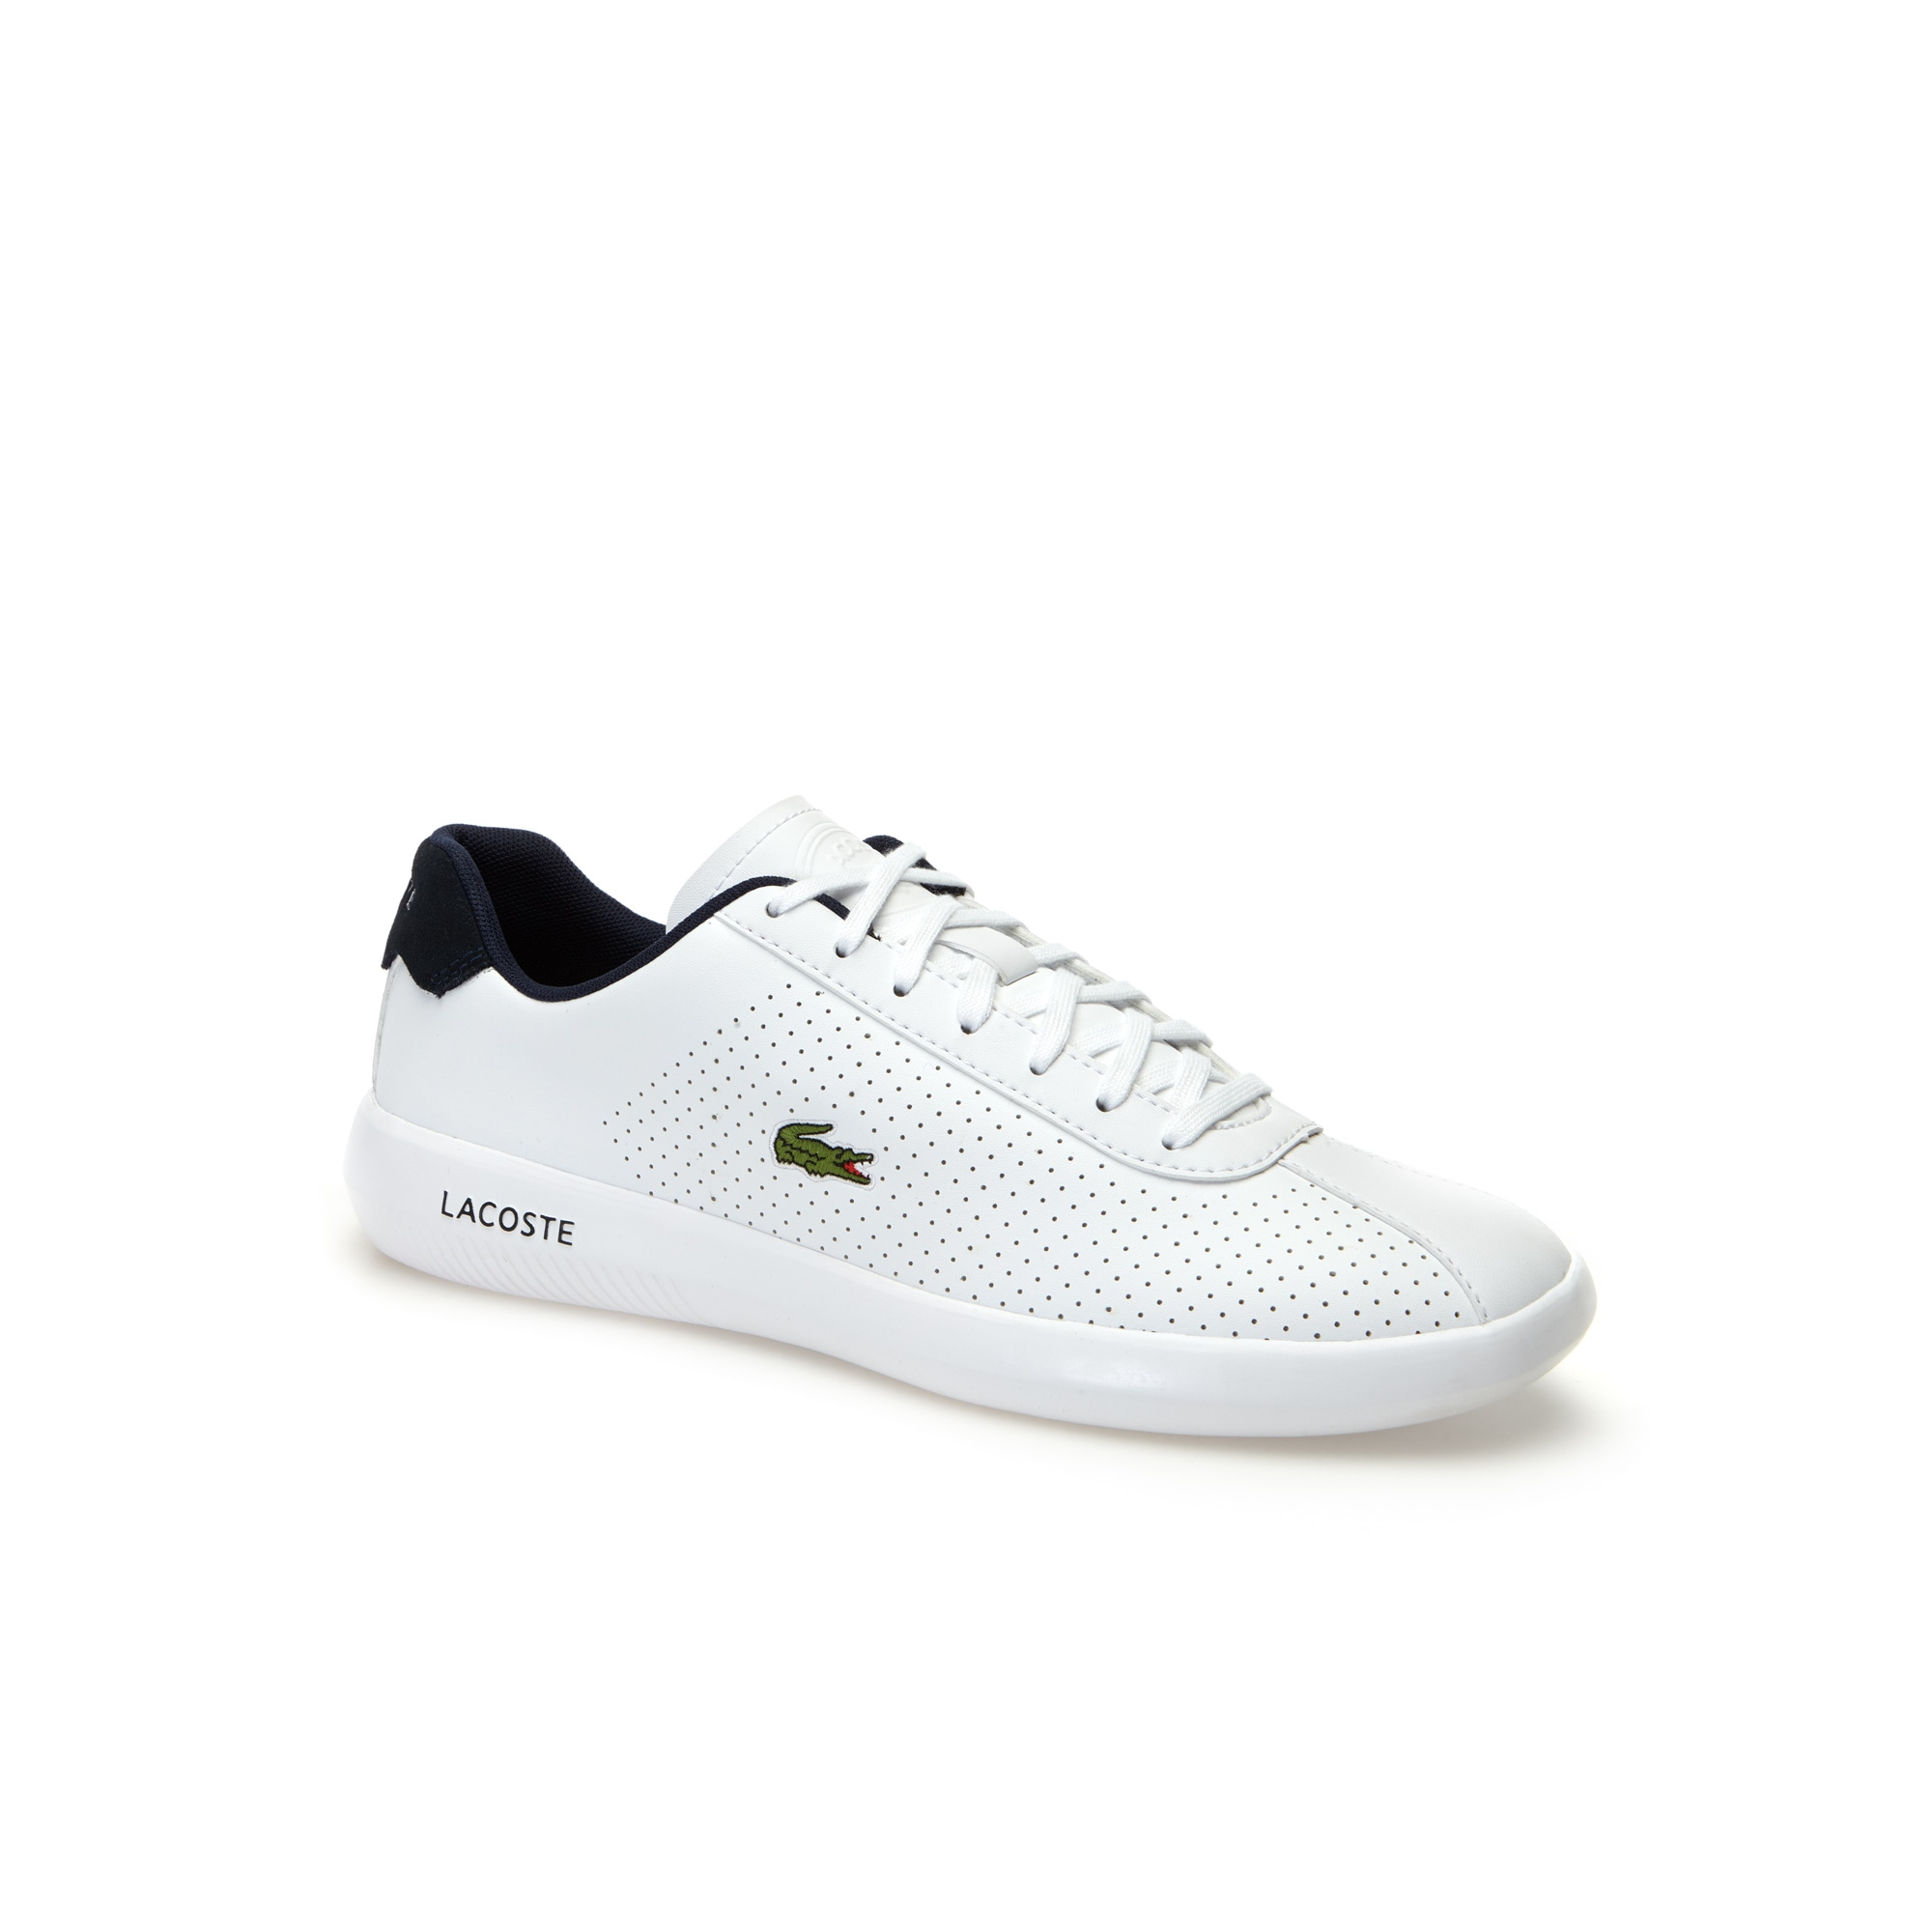 fccd986b09 Chaussures   Soldes   LACOSTE